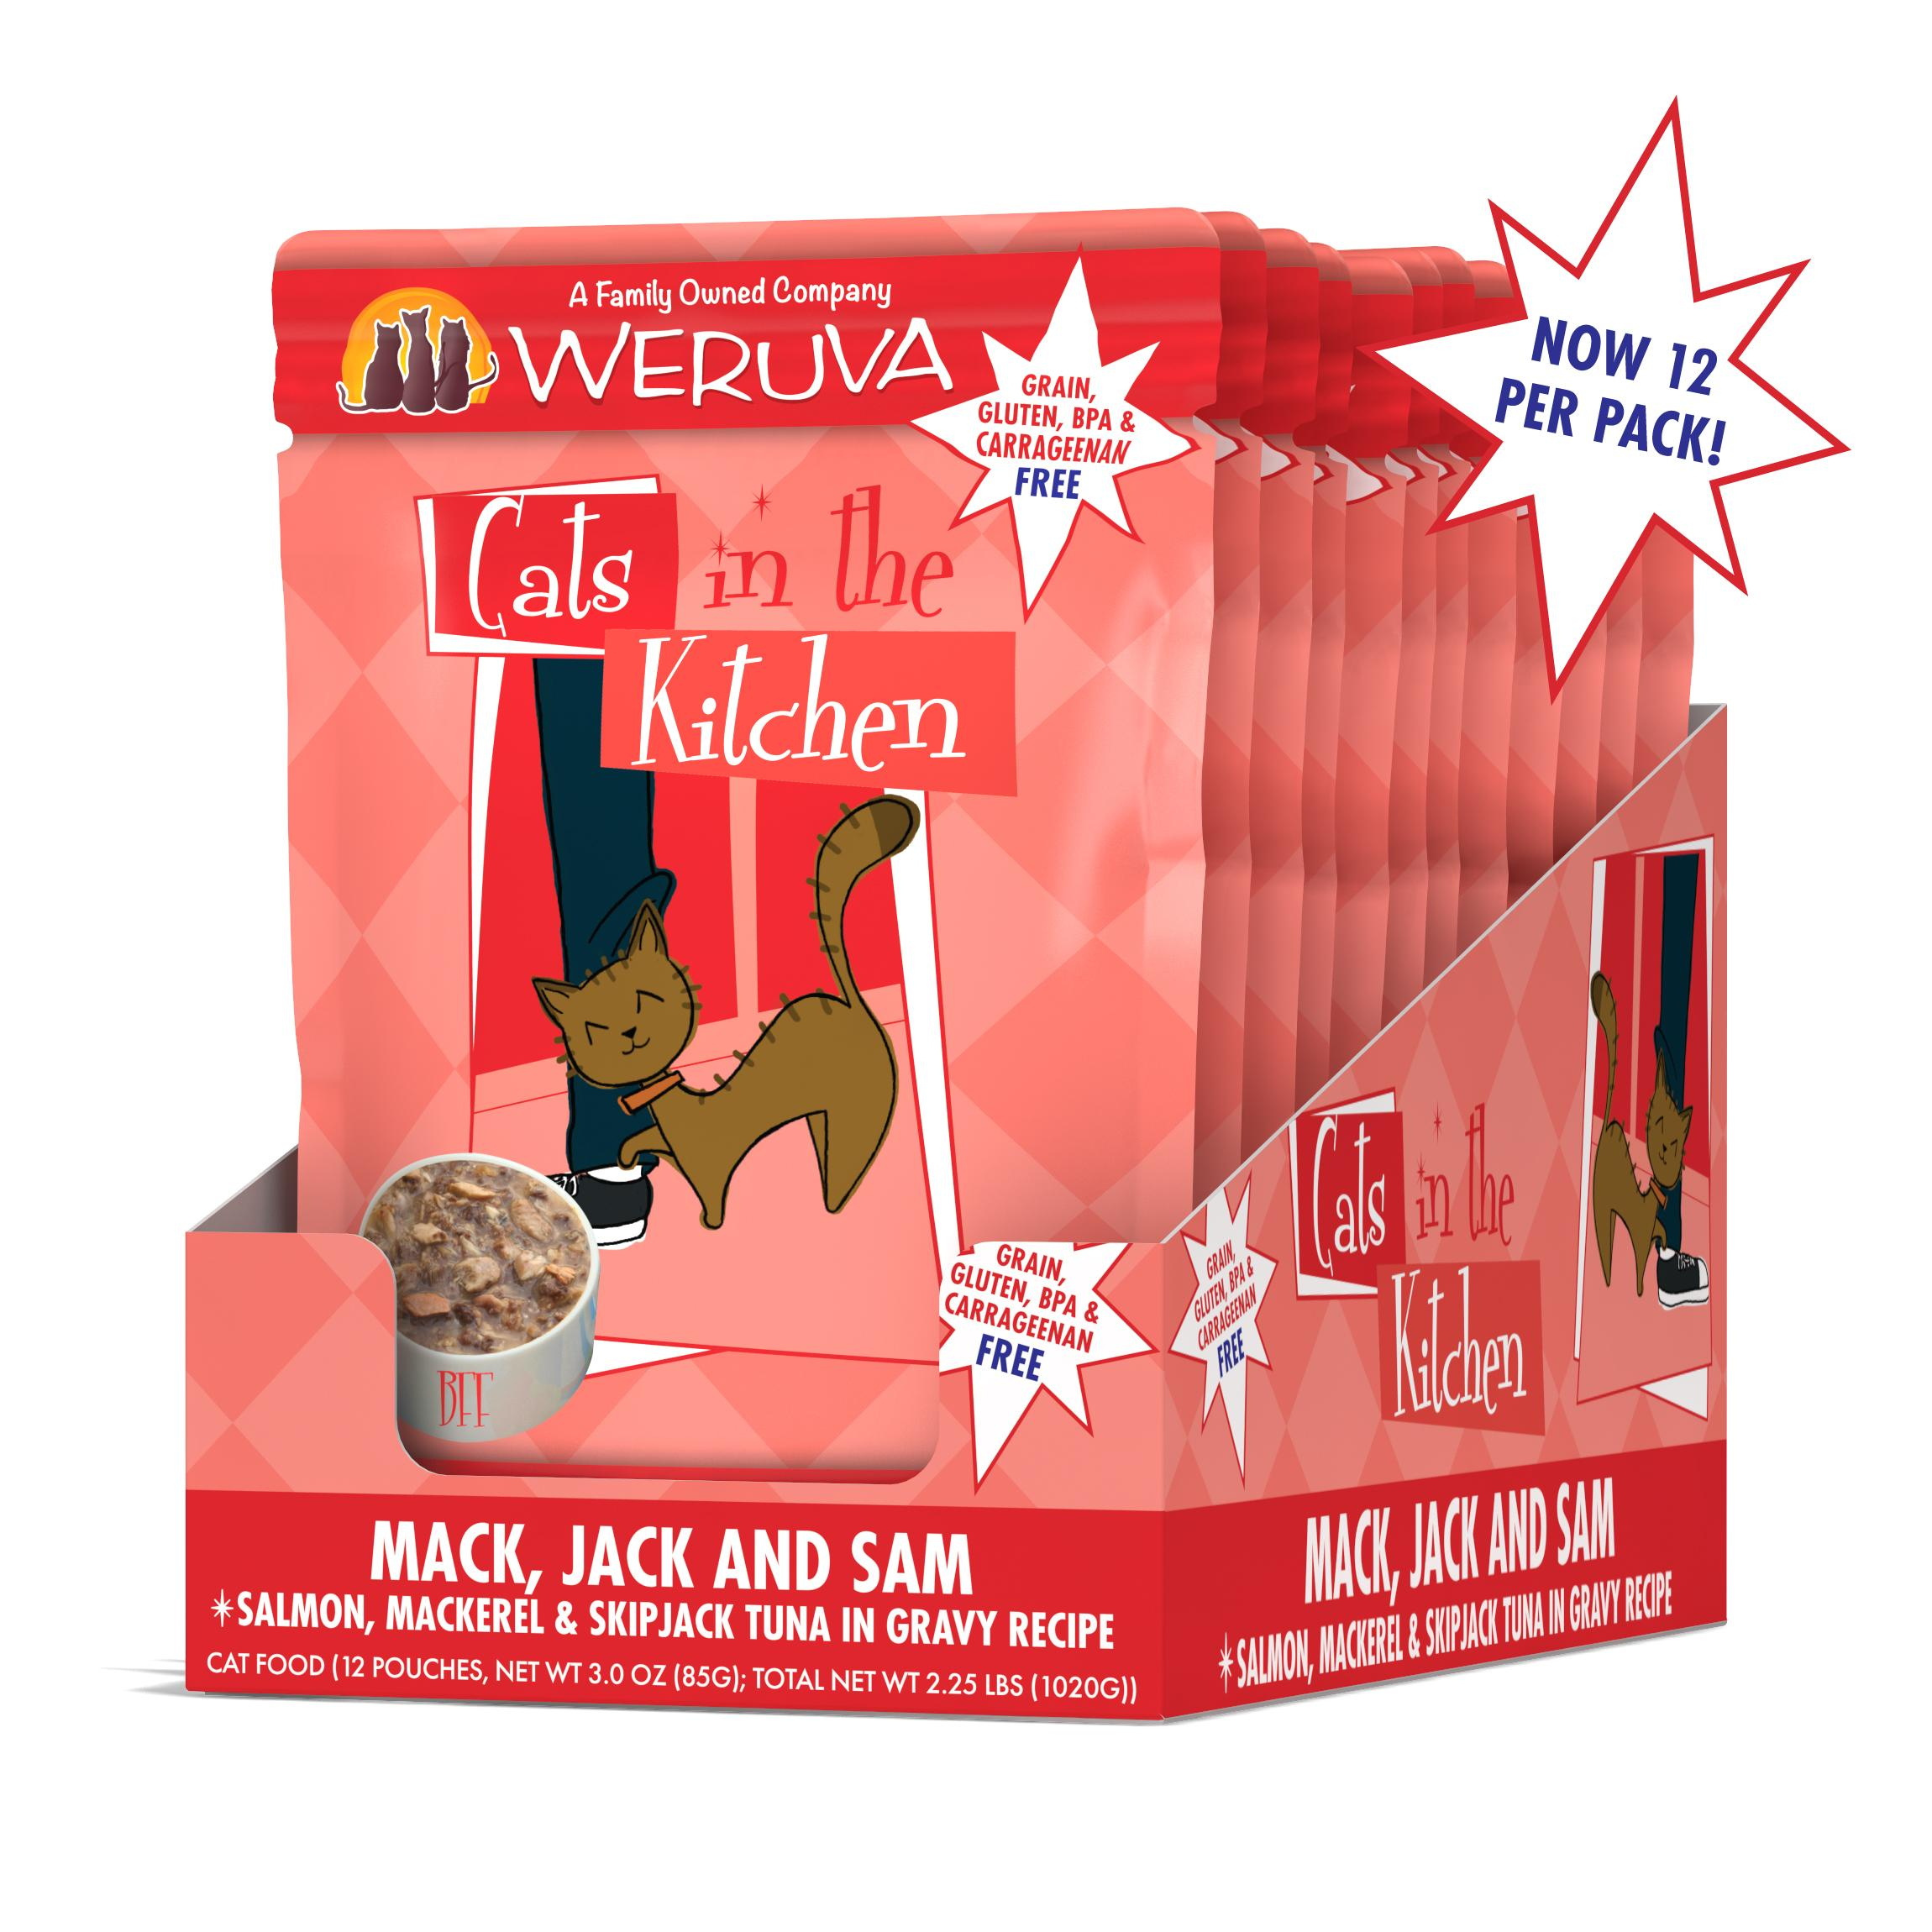 Weruva Cats in the Kitchen Mack, Jack & Sam Salmon, Mackerel & Skip Jack Tuna in Gravy, Grain-Free Wet Cat Food, 3-oz, case of 12